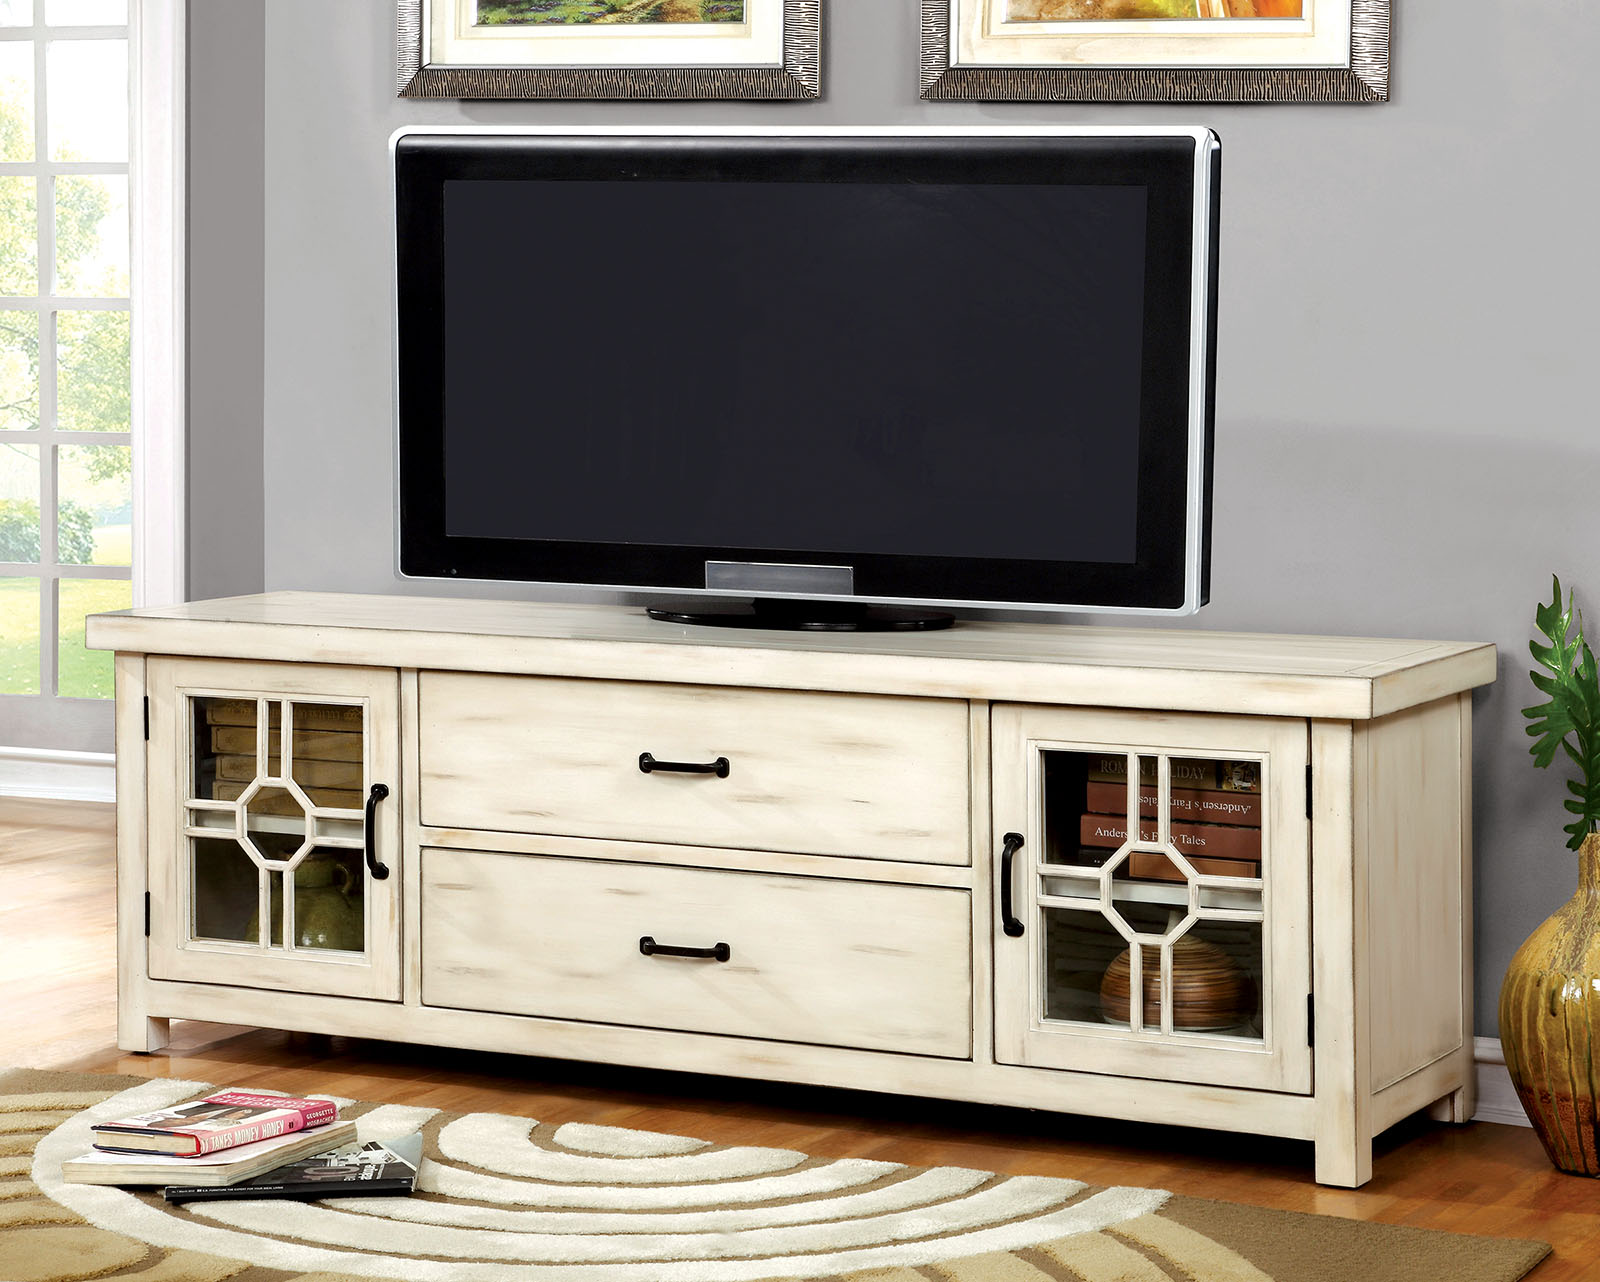 tv stands wall mount television units storage for componenets